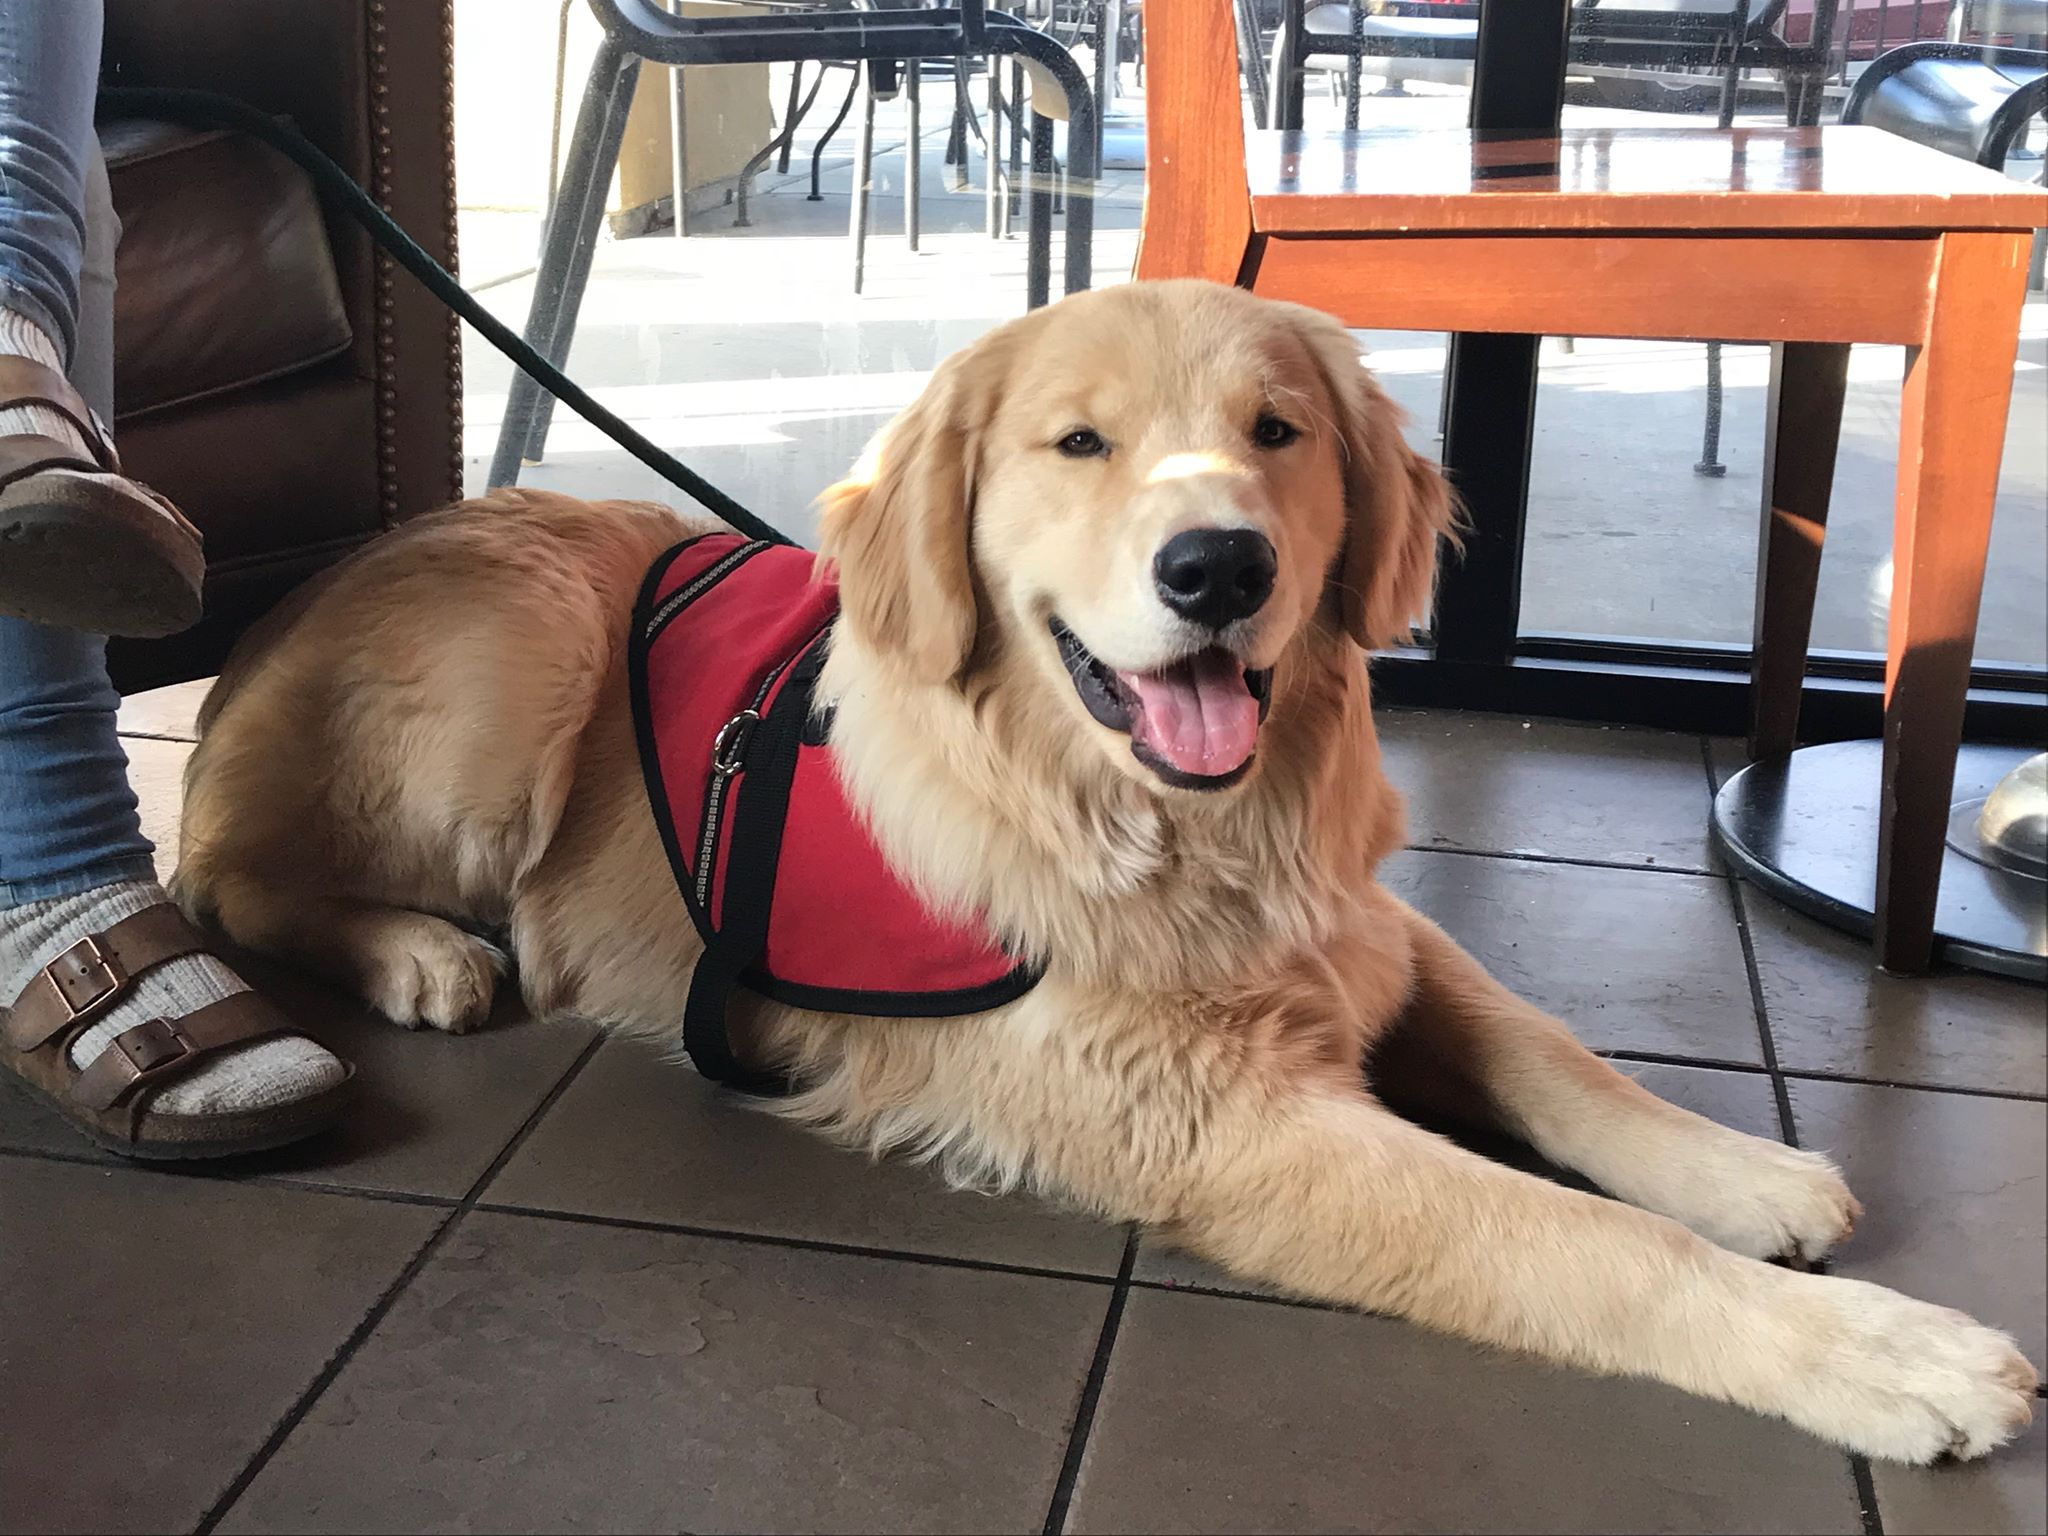 Another highly trained service dog working in a public place.